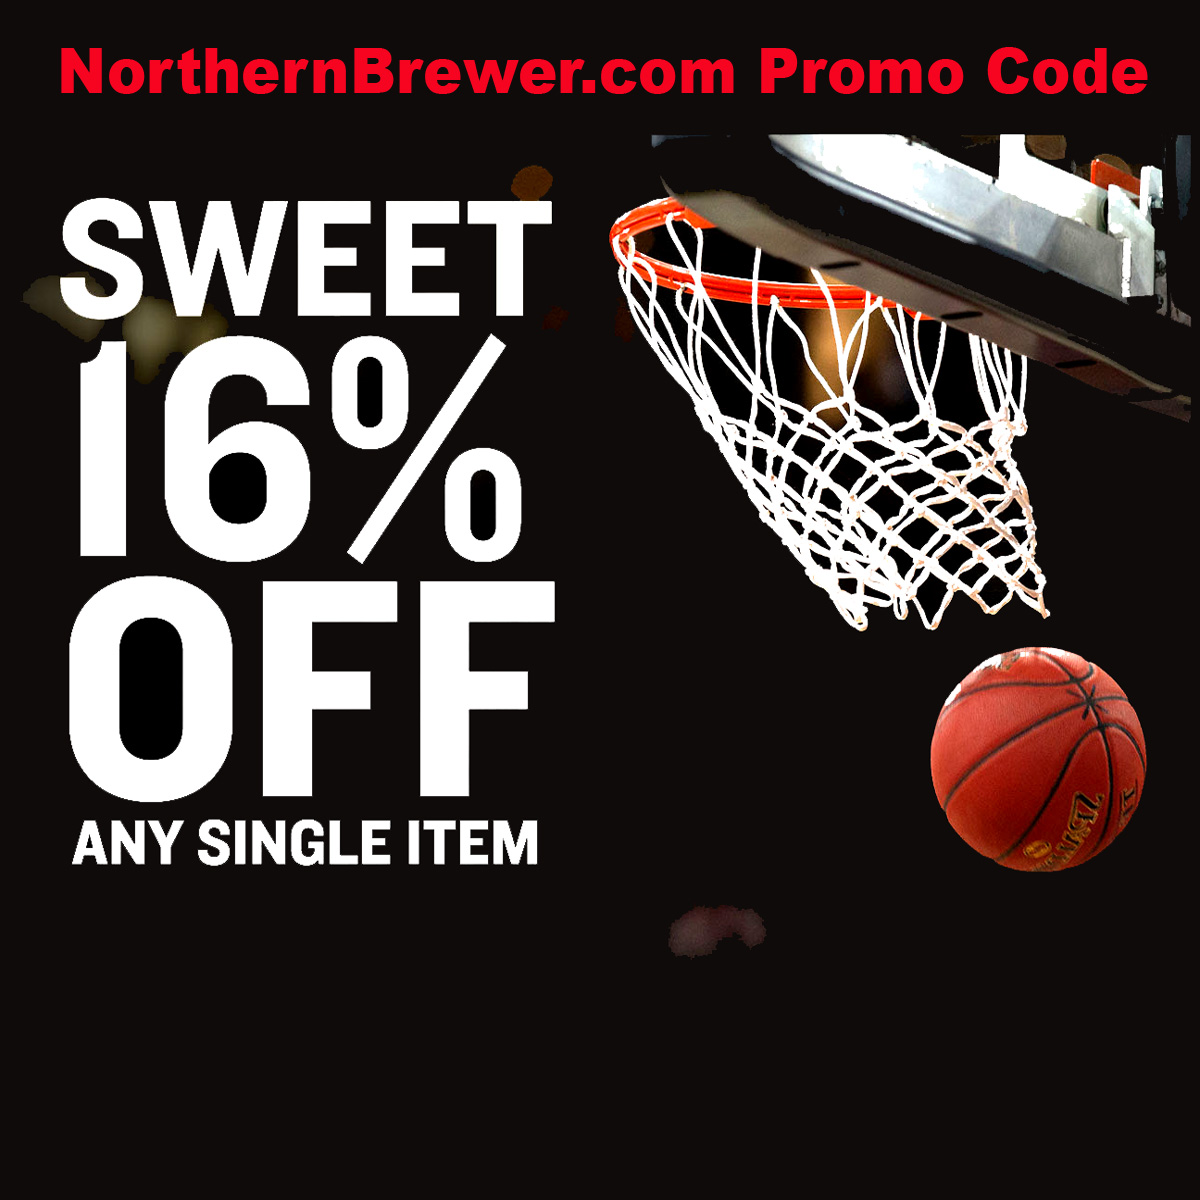 Northern Brewer Save 16% On Any Northern Brewer Item With This NorthernBrewer.com Promo Code Coupon Code